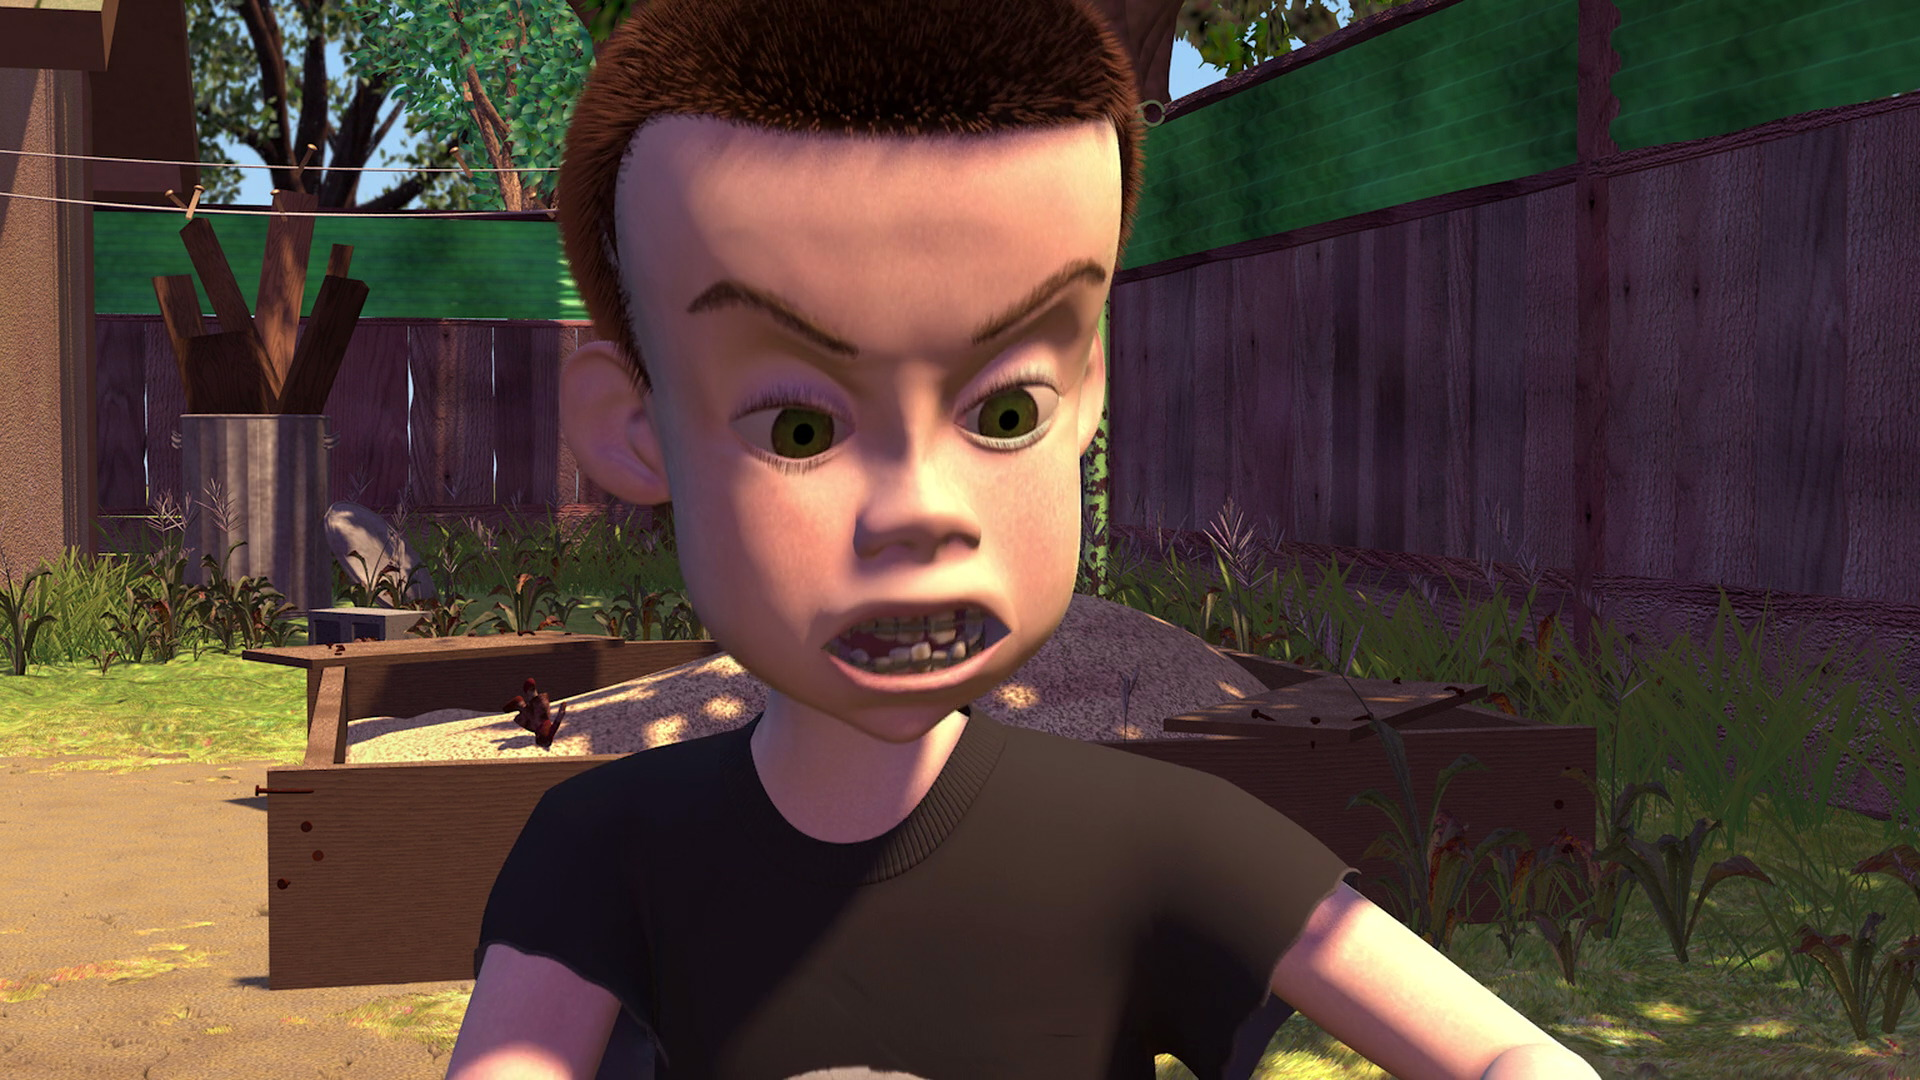 sid-phillips-personnage-toy-story-08